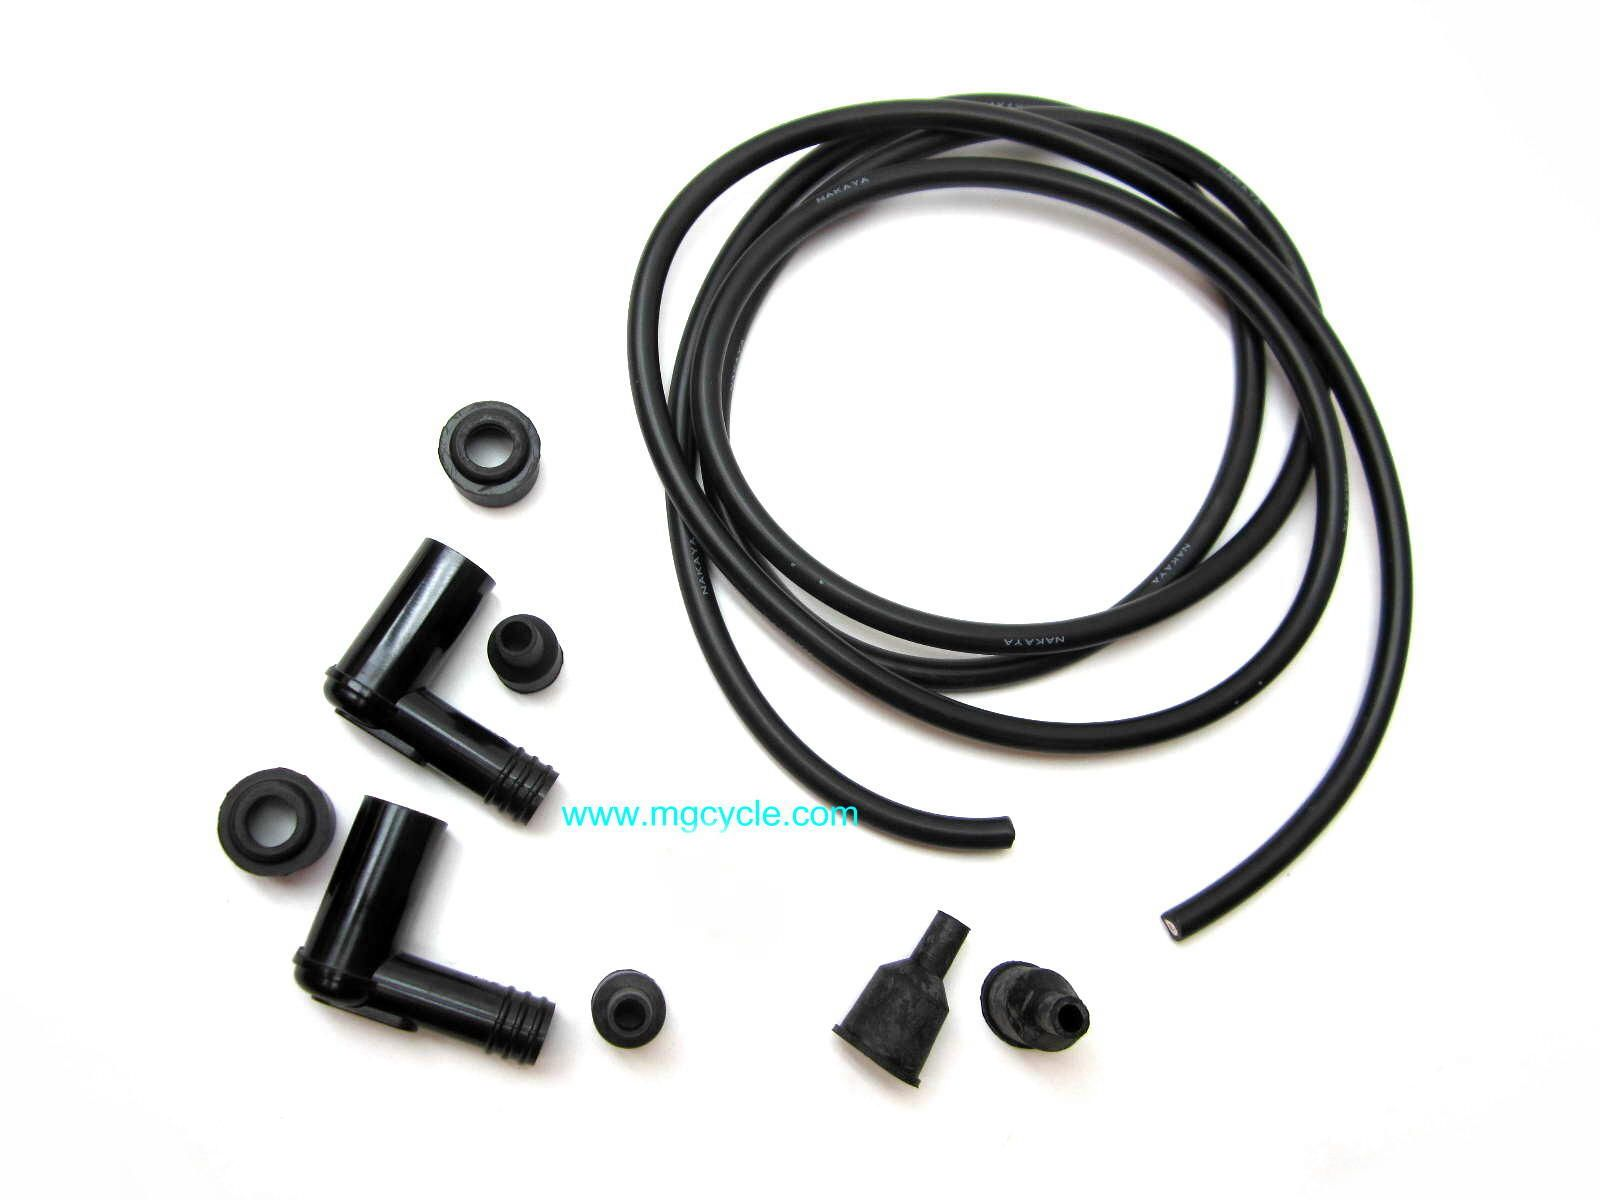 Universal spark plug wire kit for dual coil models